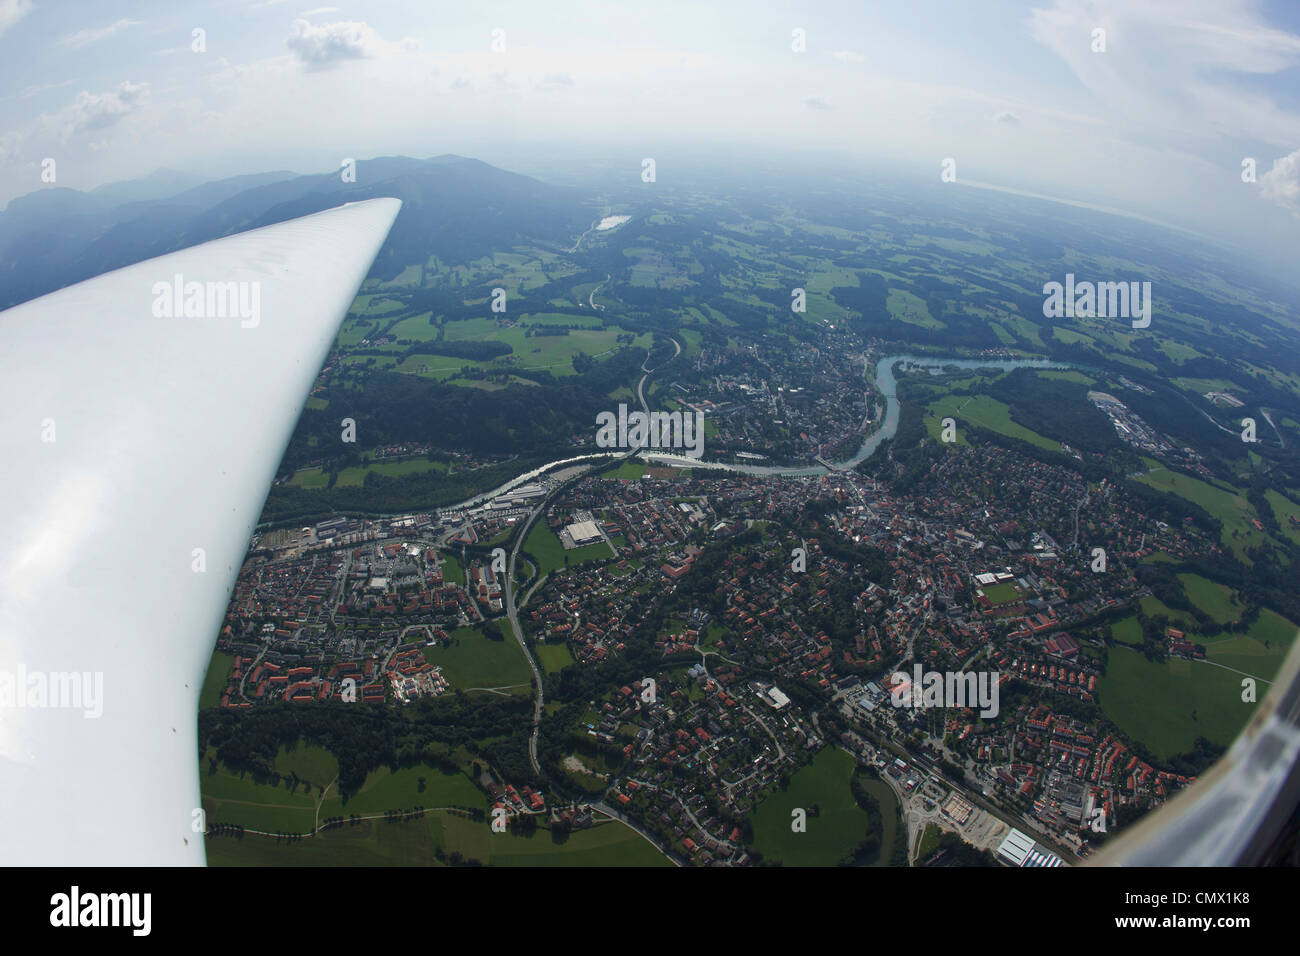 Germany, Bavaria, Bad Toelz, View of village from glider - Stock Image